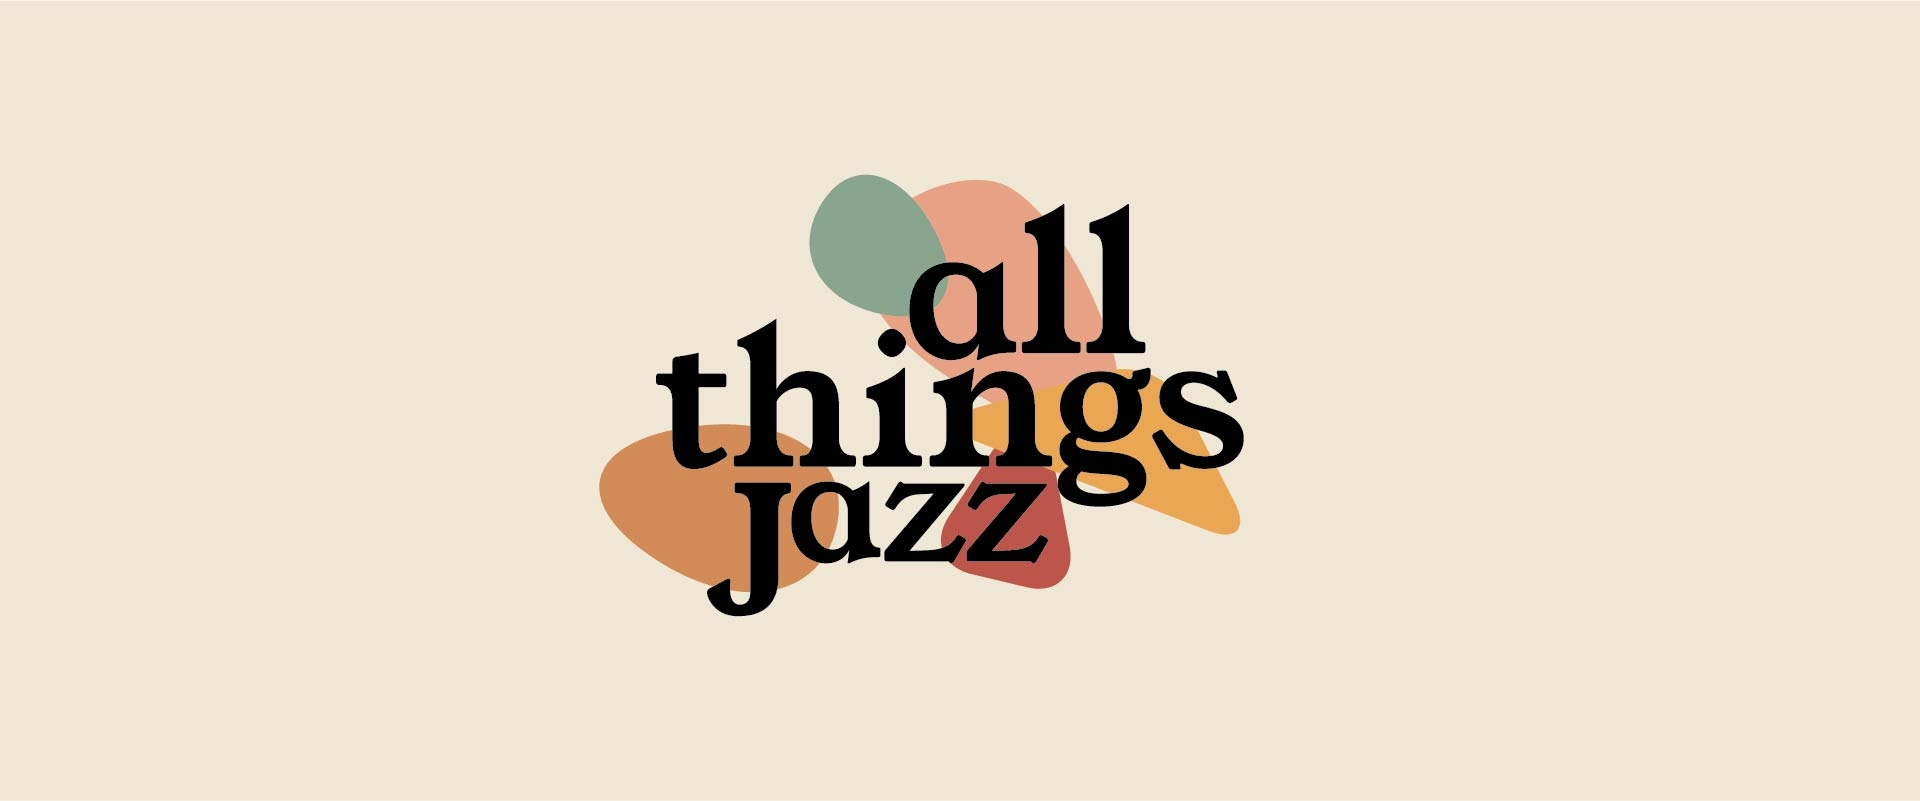 Jazz (@allthingsjazz) Cover Image